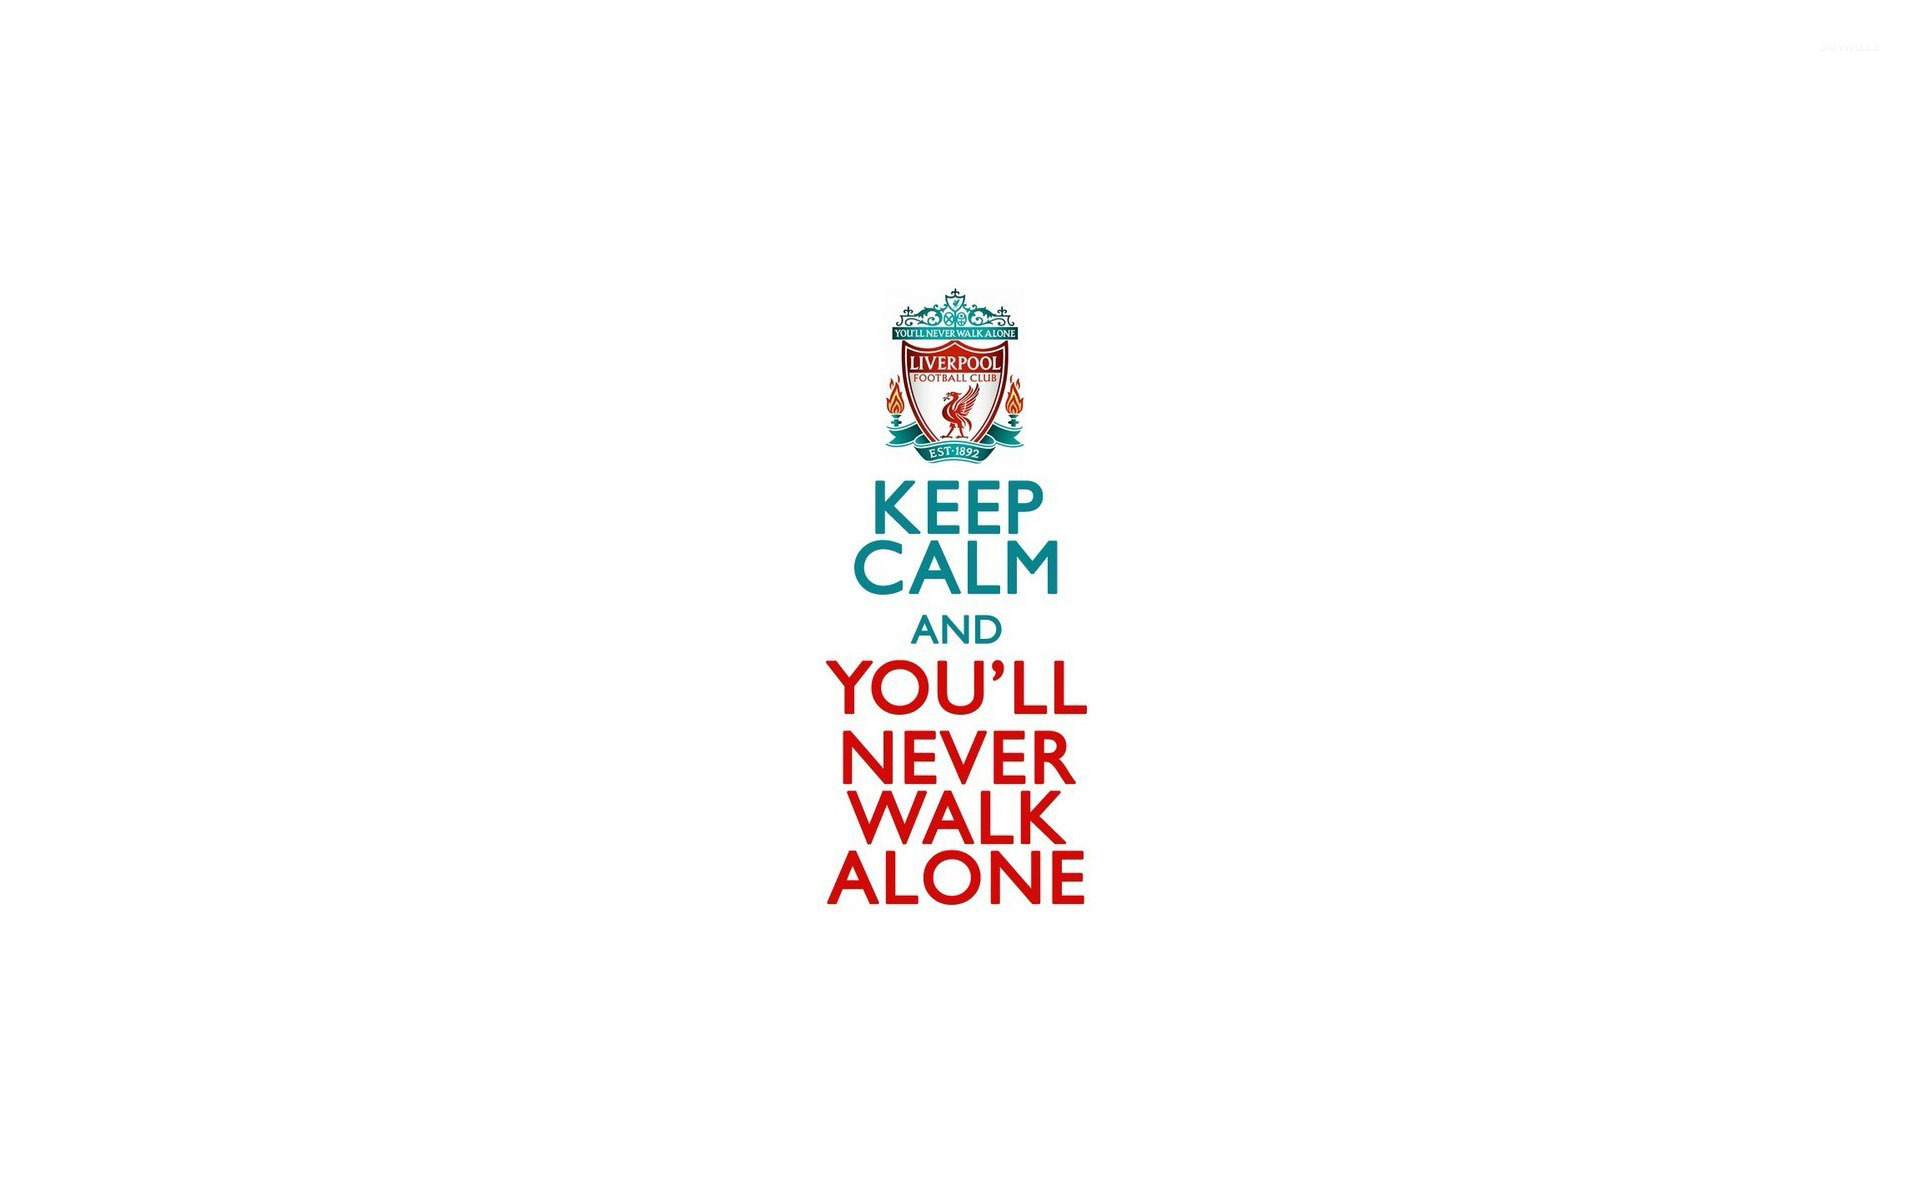 Keep Calm an youll never walk alone wallpaper 1920x1200